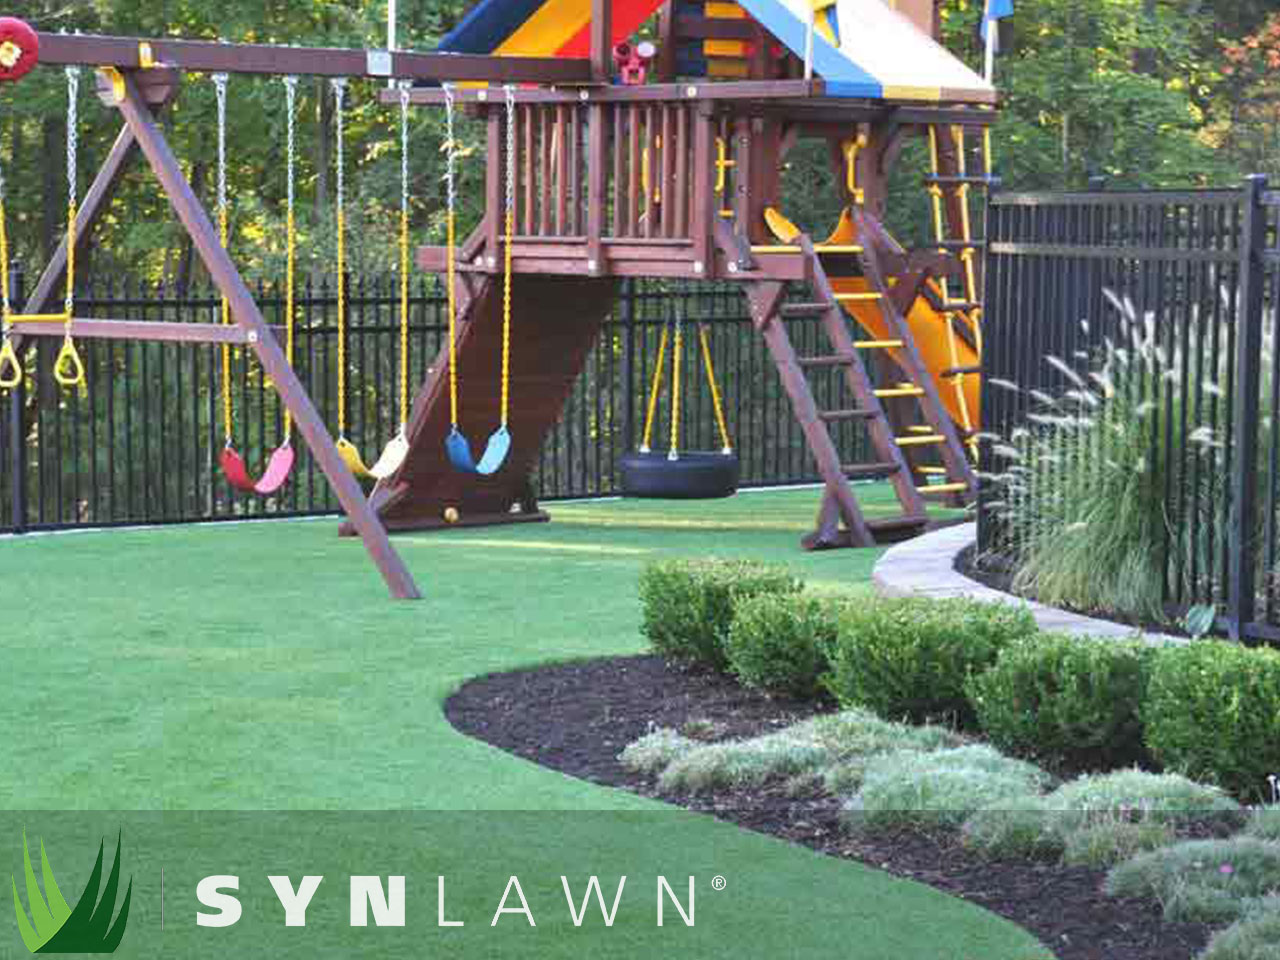 SYNLawn Playground Photo 28